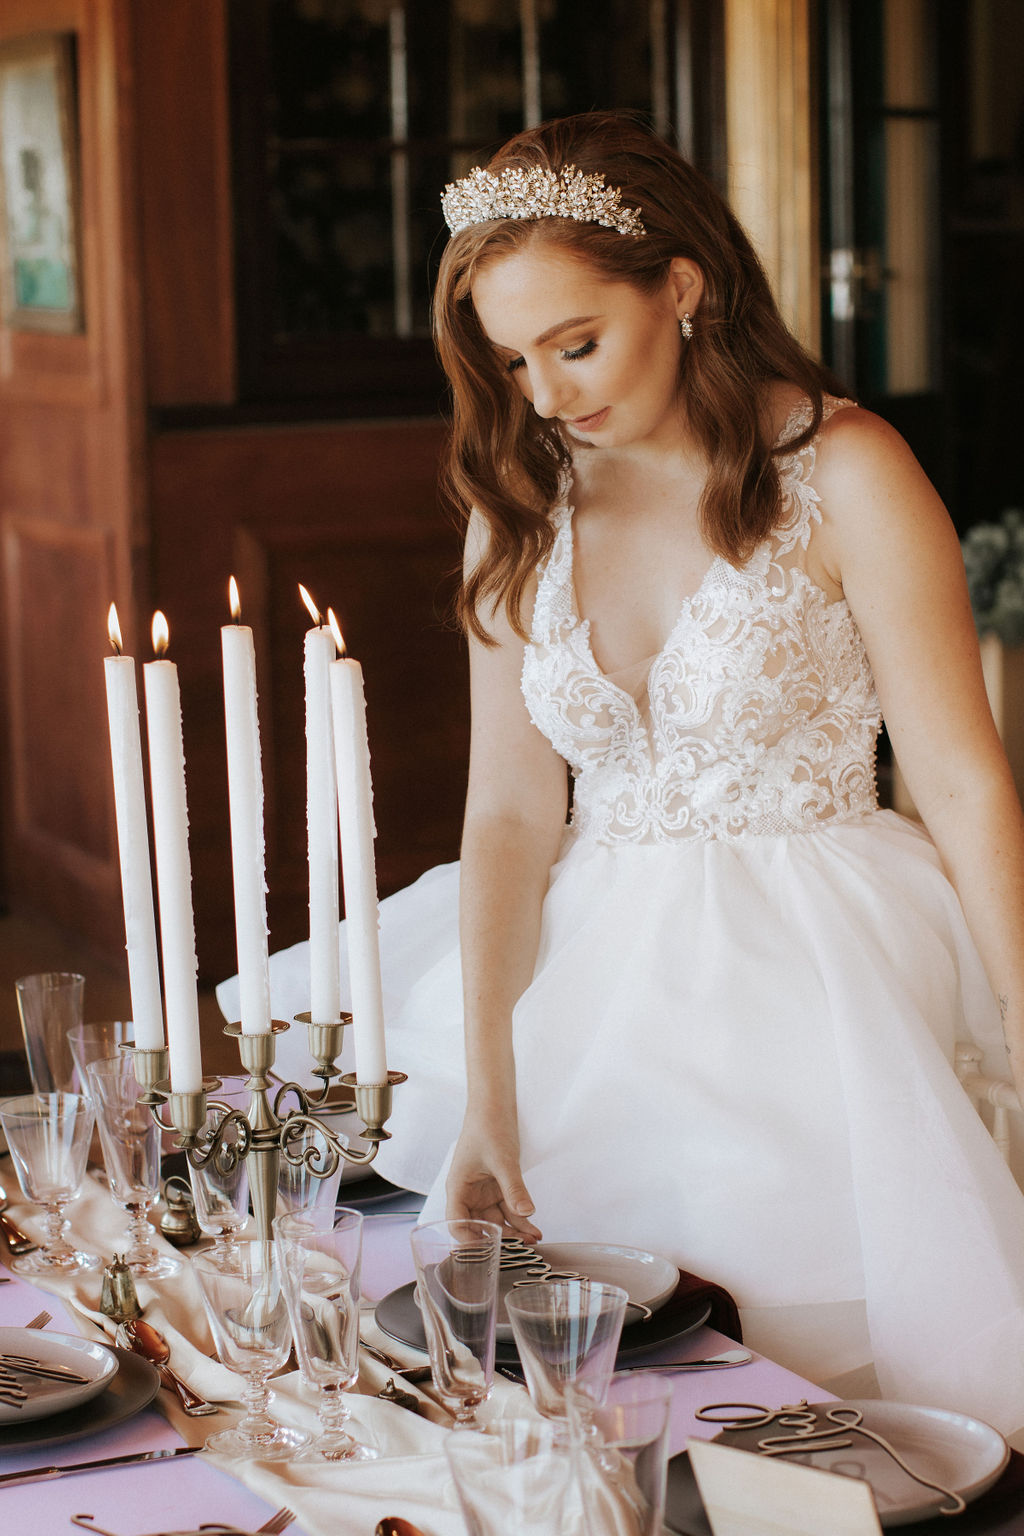 How to Create a Beauty & the Beast Styled Wedding... | Ideal Bride